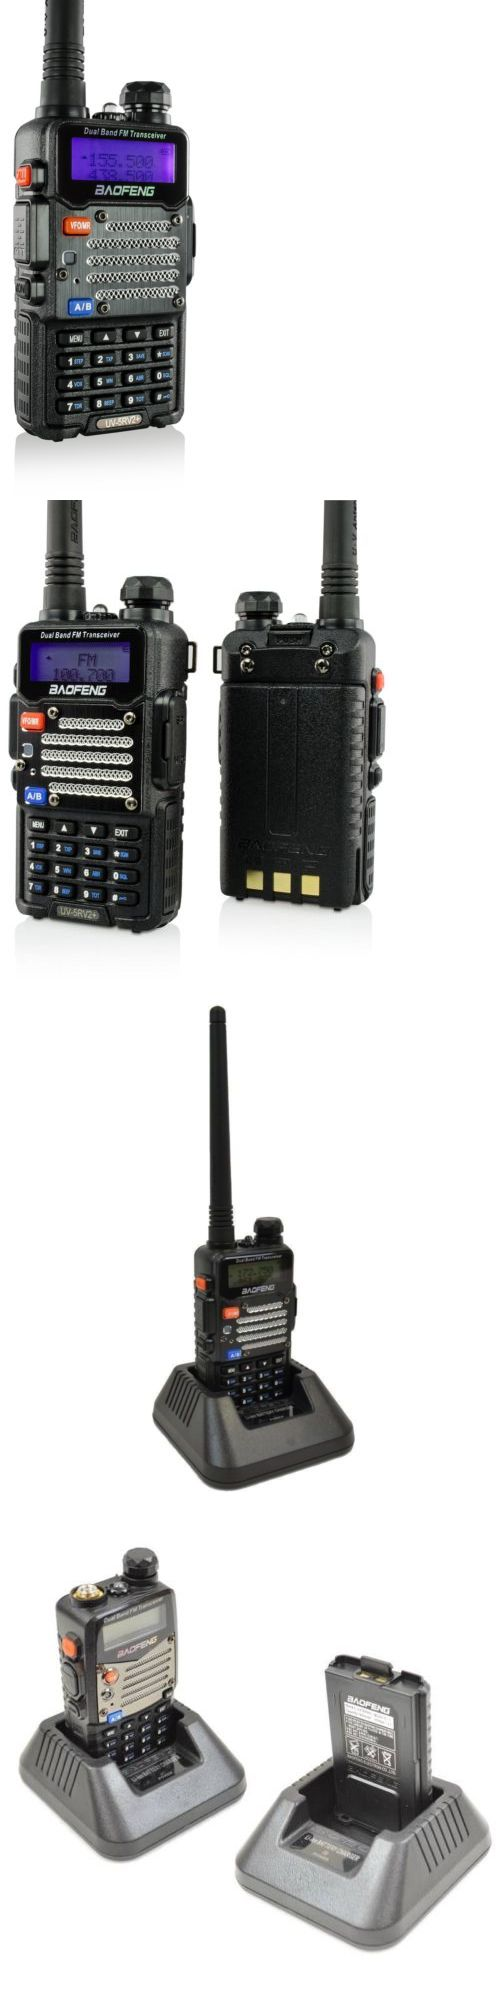 Ham Radio Transceivers: Baofeng Uv-5R V2+ Stronger Case And Enhanced Features Set And Durable Housing! -> BUY IT NOW ONLY: $33.99 on eBay!